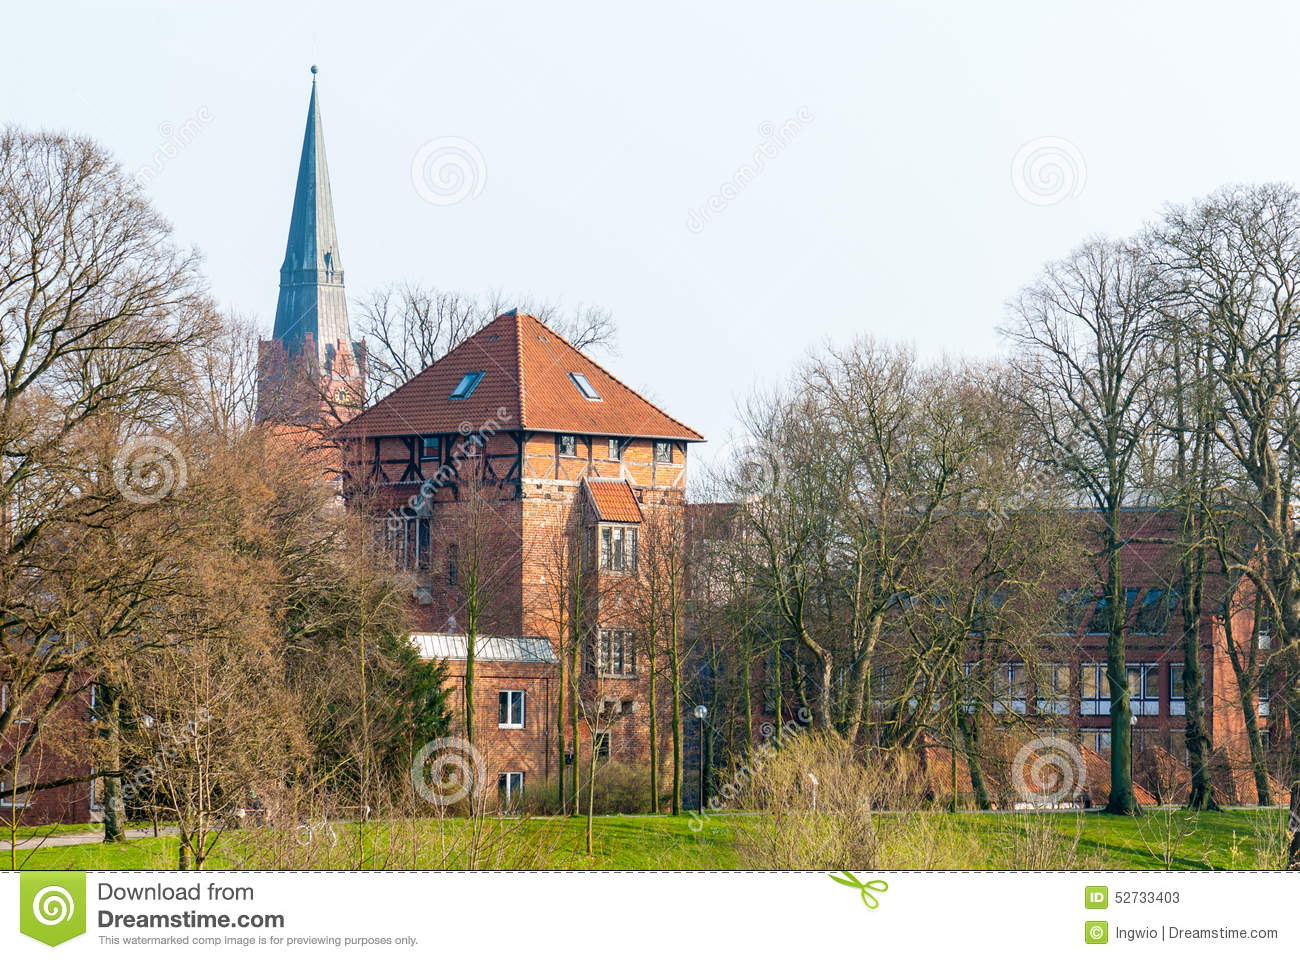 Townscape Nienburg at the river Weser